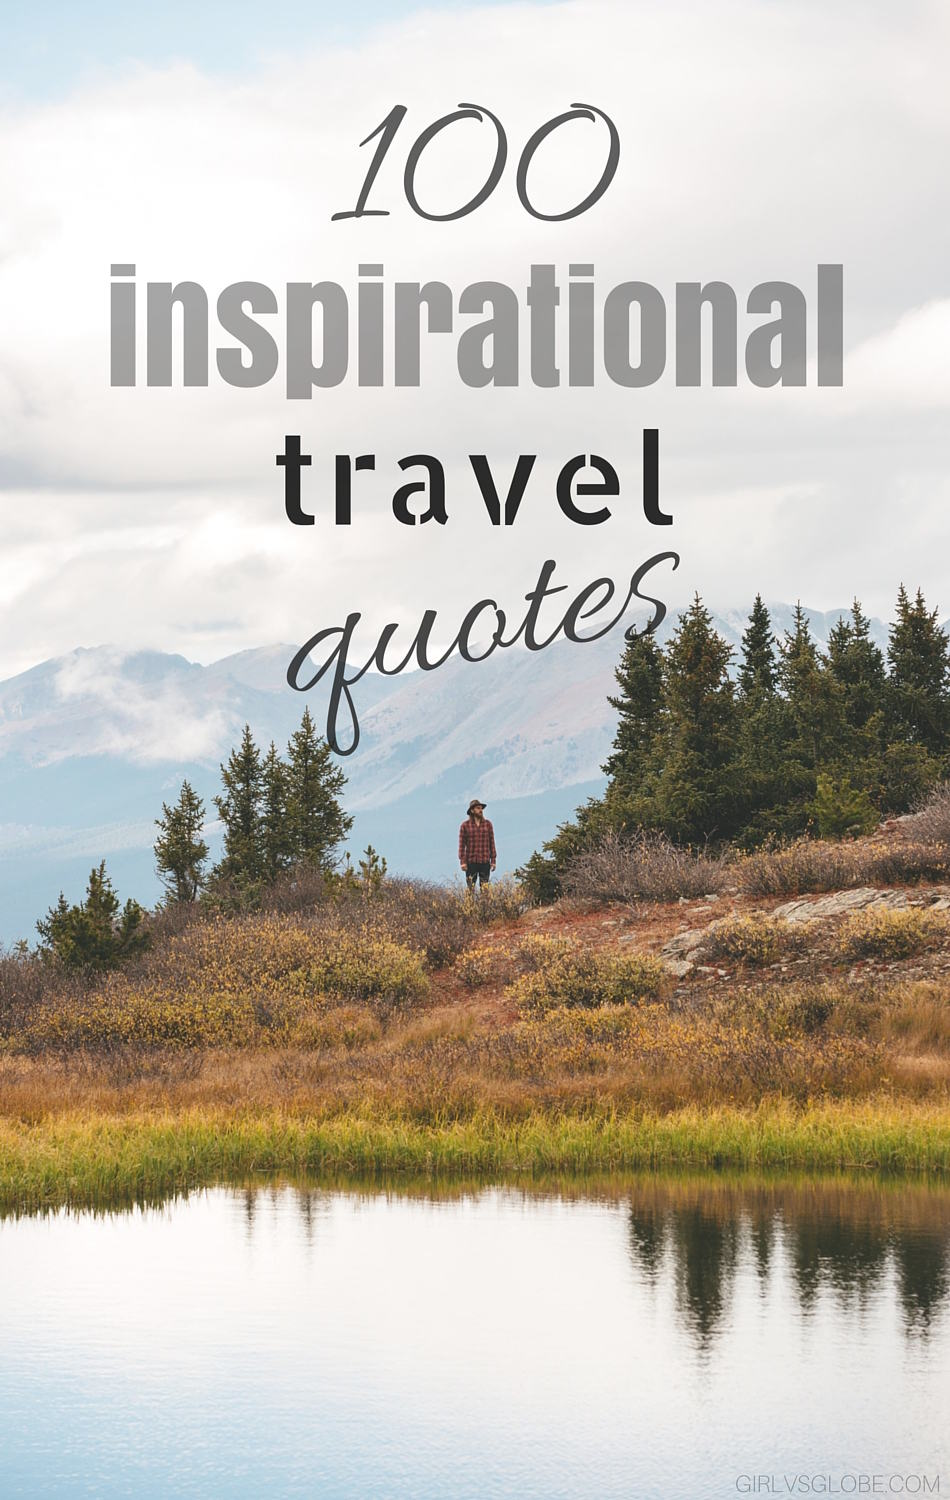 inspirational travel quotes girl vs globe